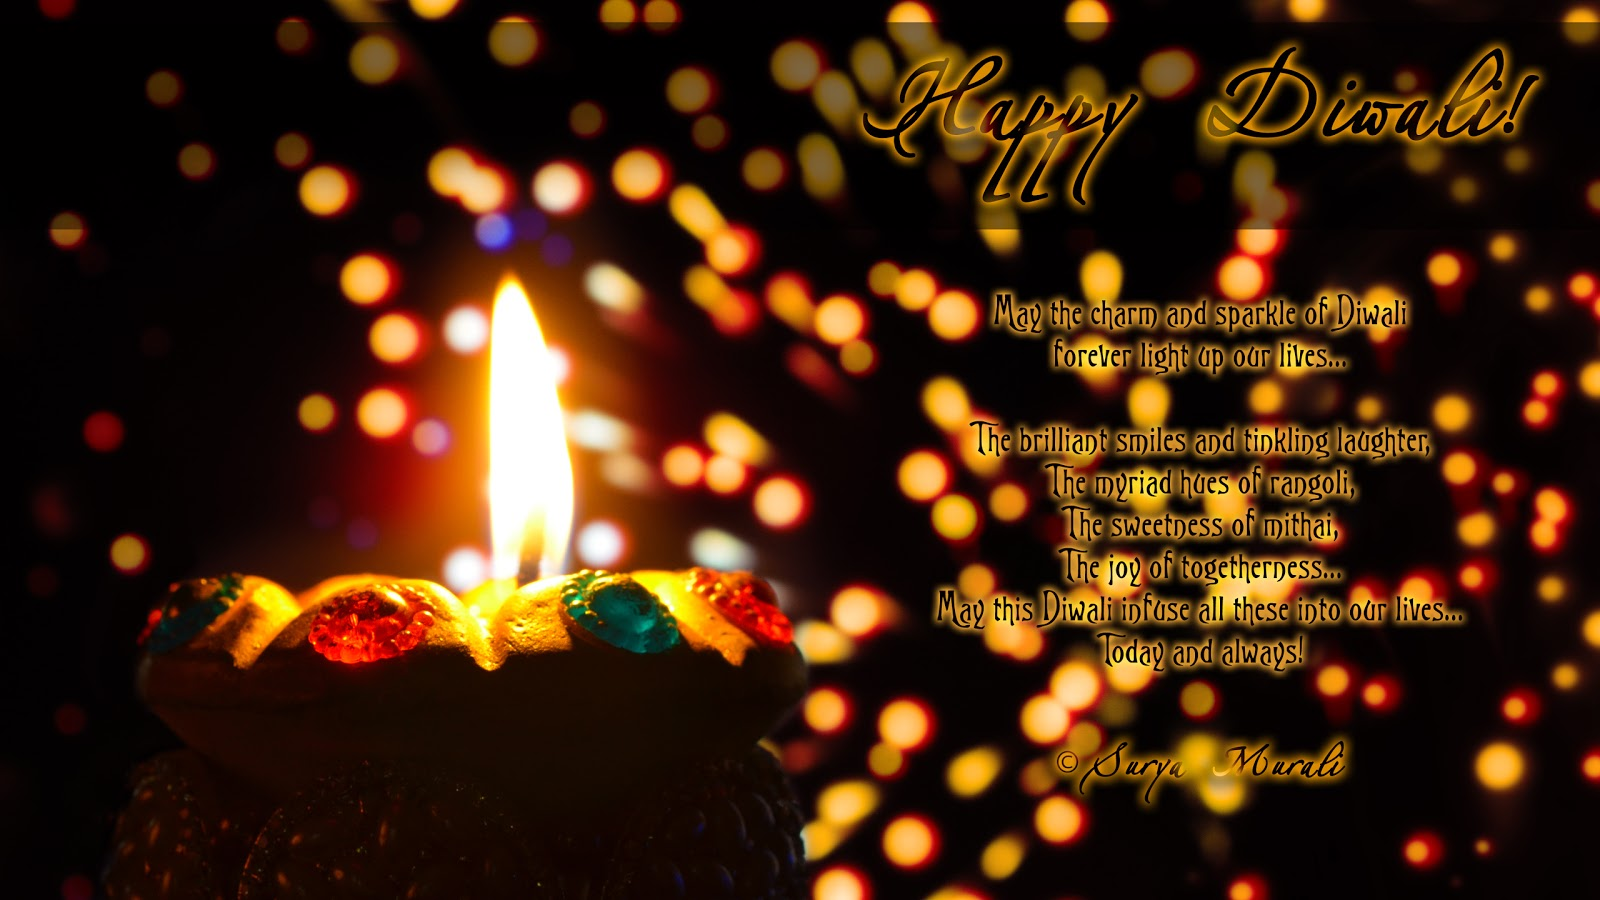 Happy Diwali Wishes For Wife